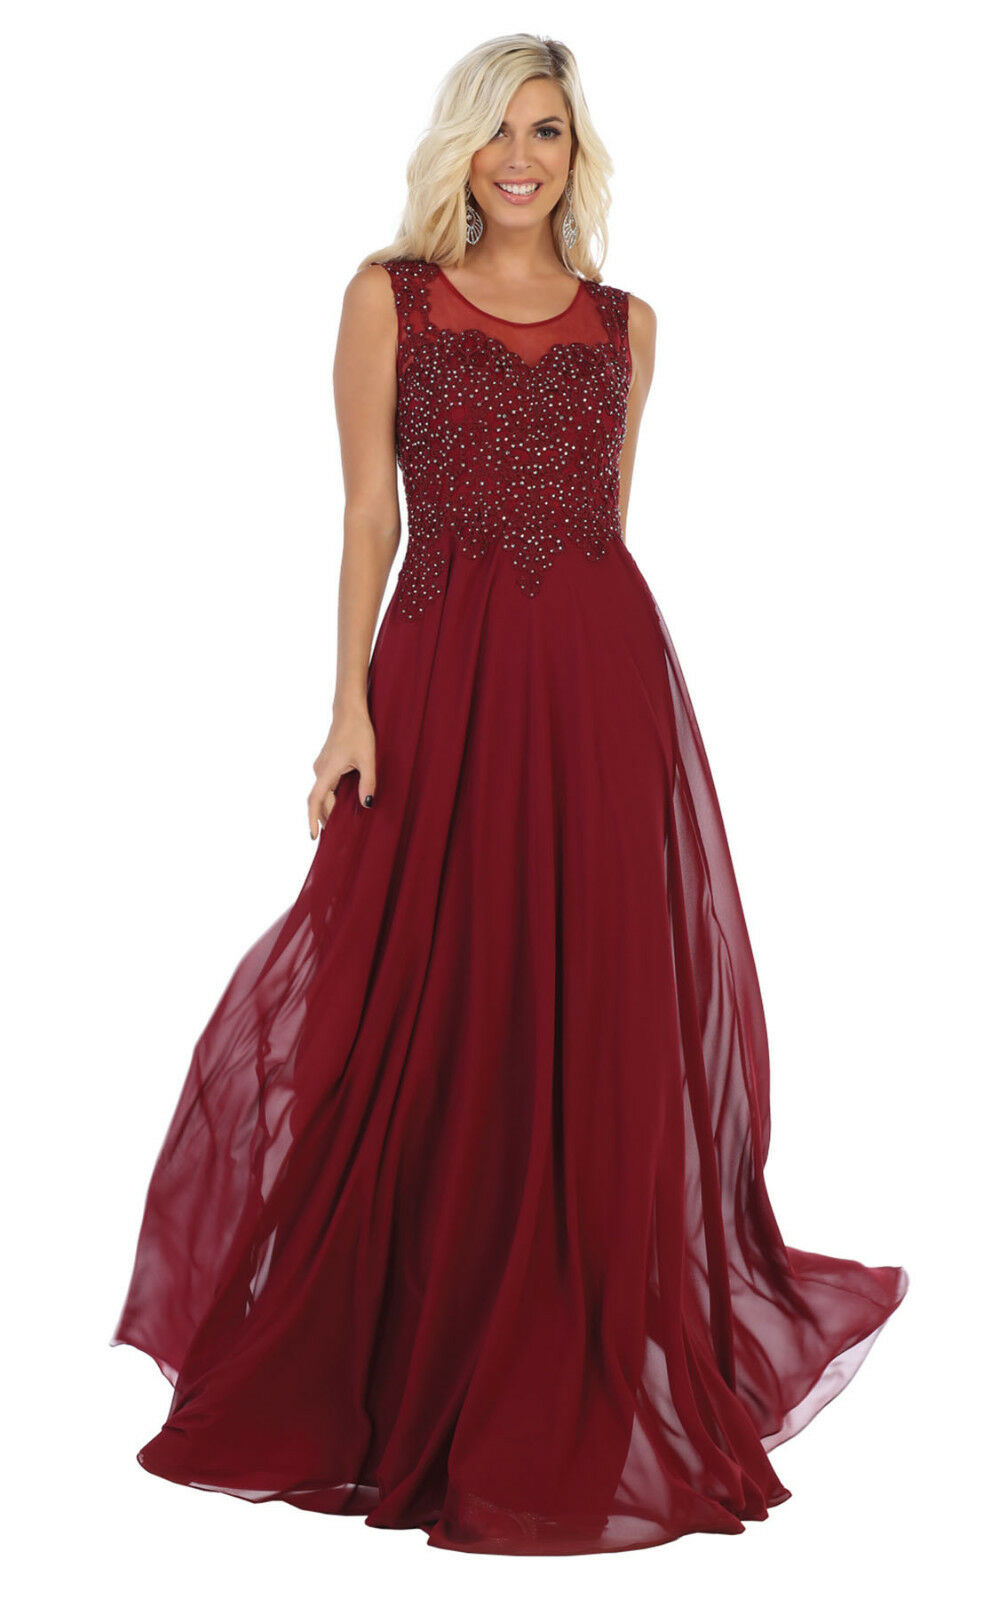 SPECIAL OCCASION FLOWY PROM DESIGNER FORMAL EVENING GOWN SLEEVELESS PARTY DRESS